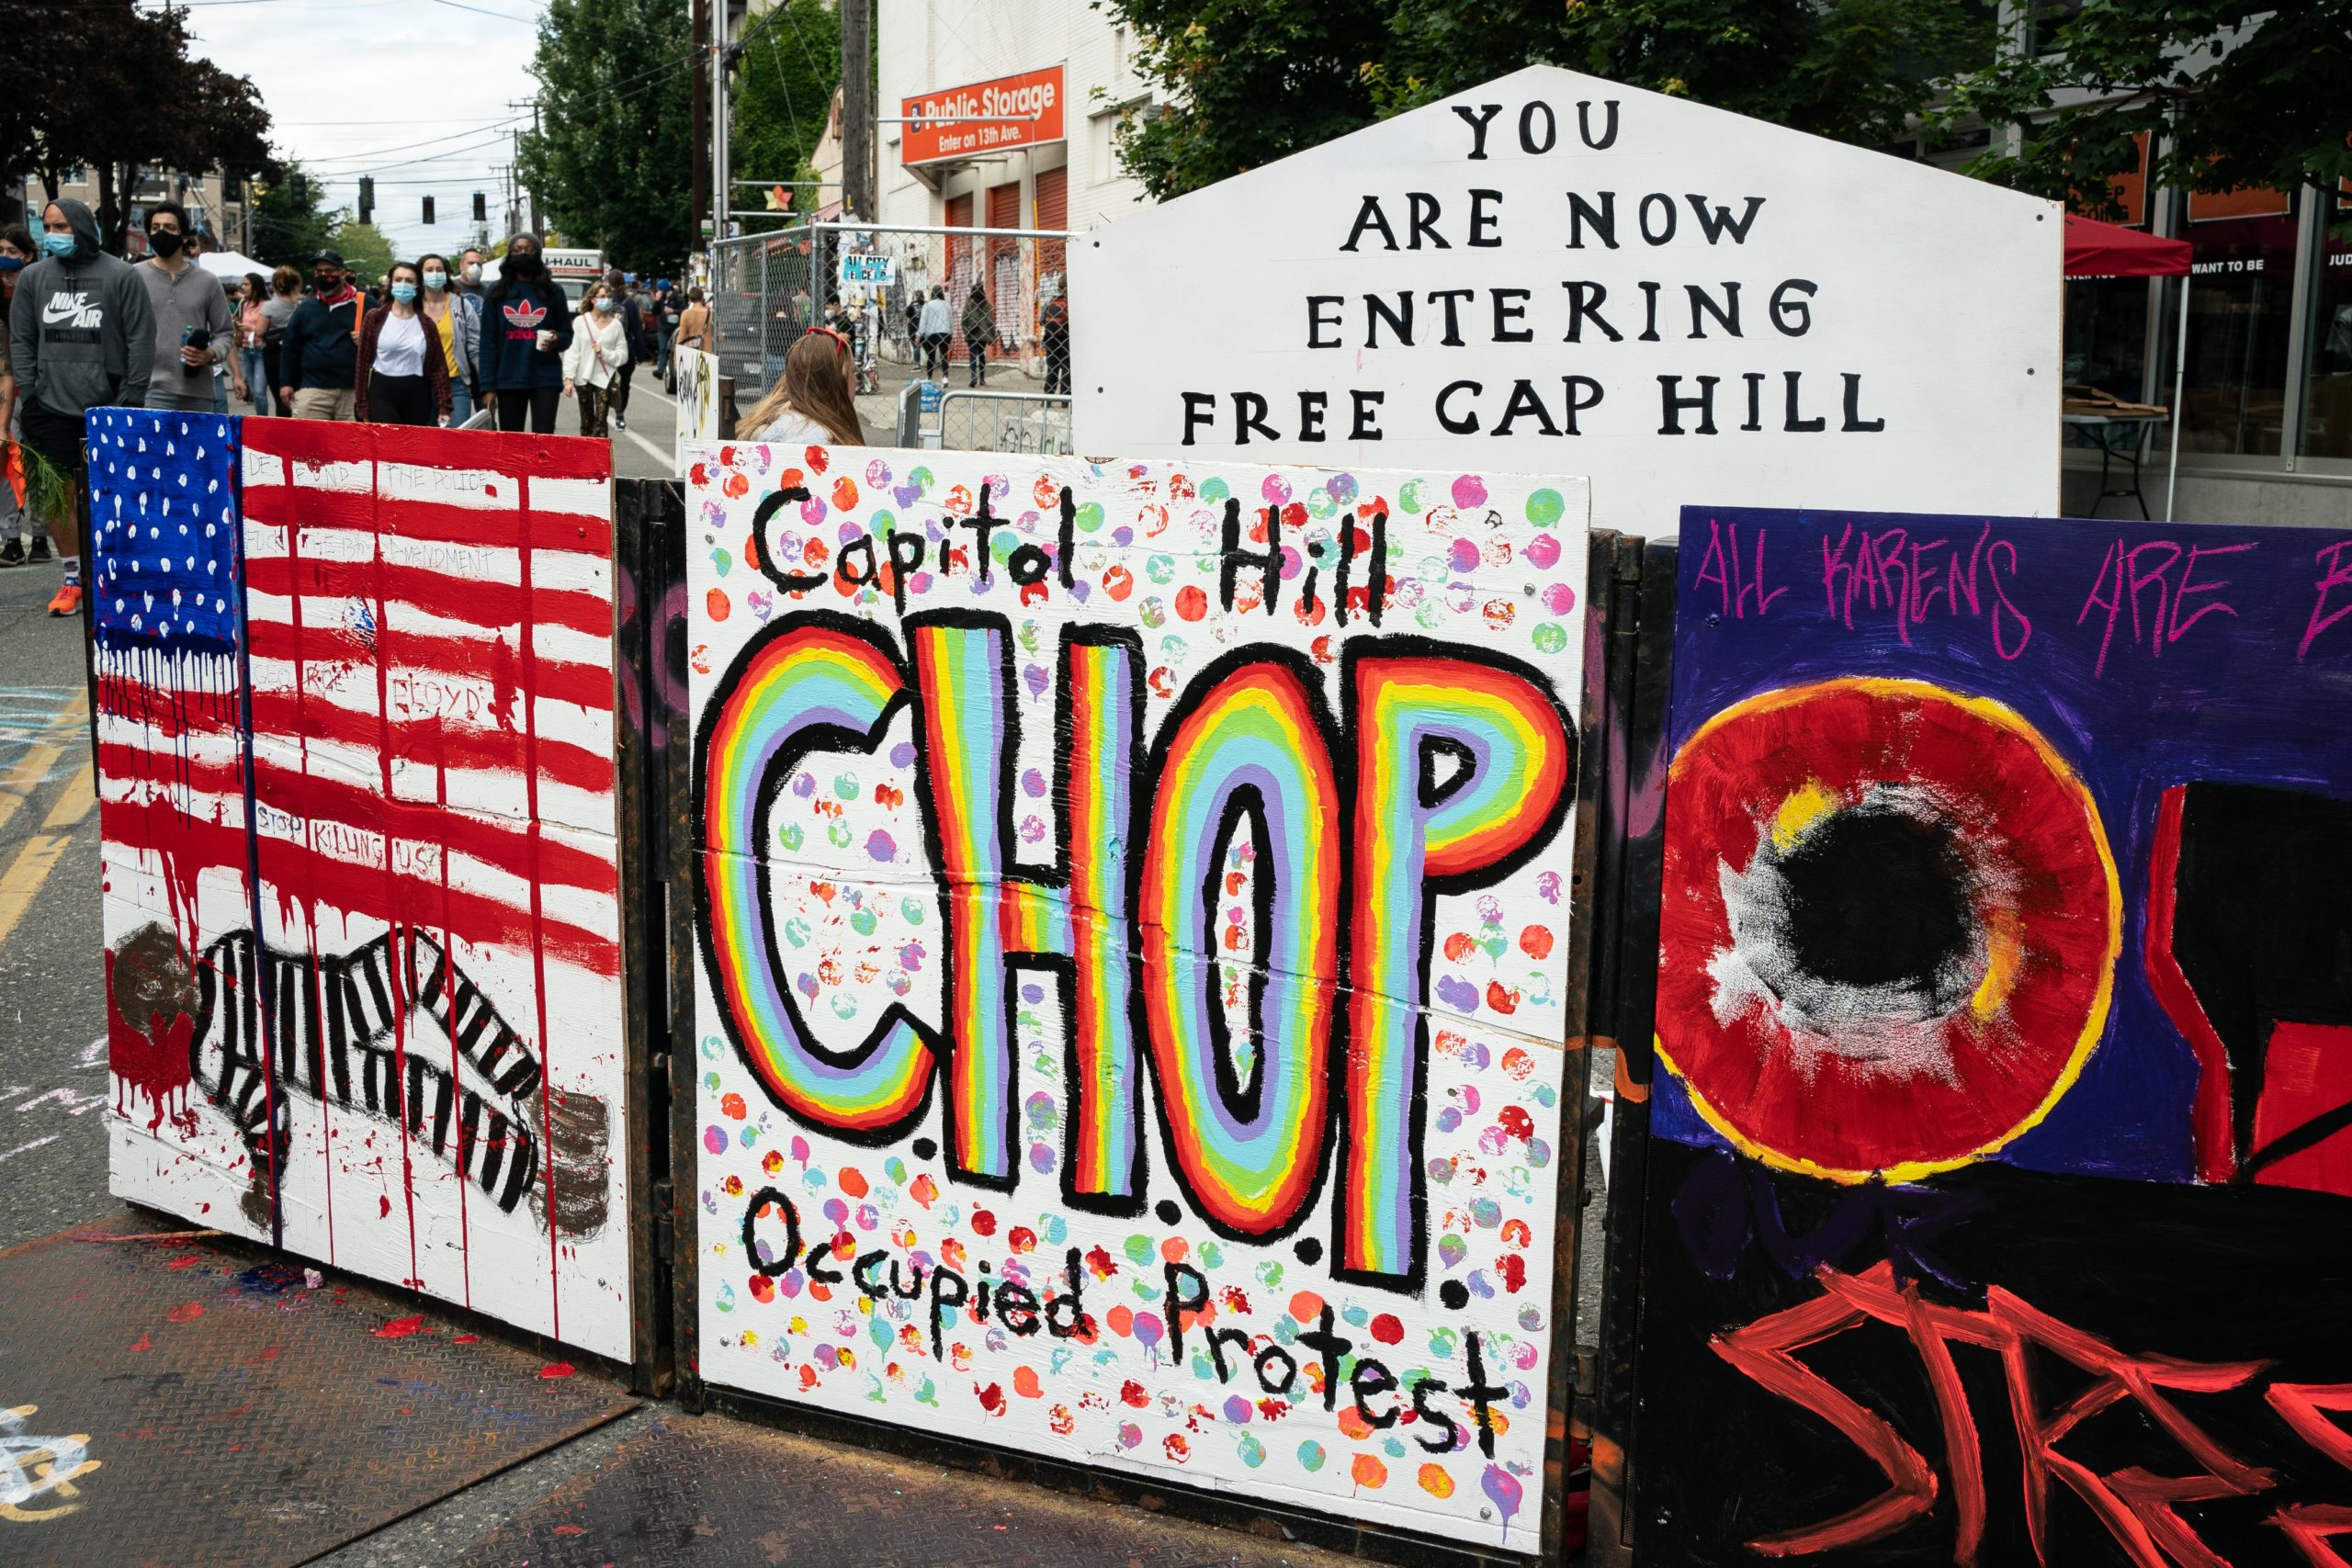 """SEATTLE, WA - JUNE 14: A signs reads """"Capitol Hill Occupied Protest"""" in area that has been referred to by protesters by that name as well as """"Capitol Hill Organized Protest, or CHOP, on June 14, 2020 in Seattle, Washington. Black Lives Matter protesters have continued demonstrating in what was first referred to as the Capitol Hill Autonomous Zone, which encompasses several blocks around the Seattle Police Departments vacated East Precinct, but what protesters are now calling the """"Capitol Hill Organized Protest."""" (Photo by David Ryder/Getty Images)"""